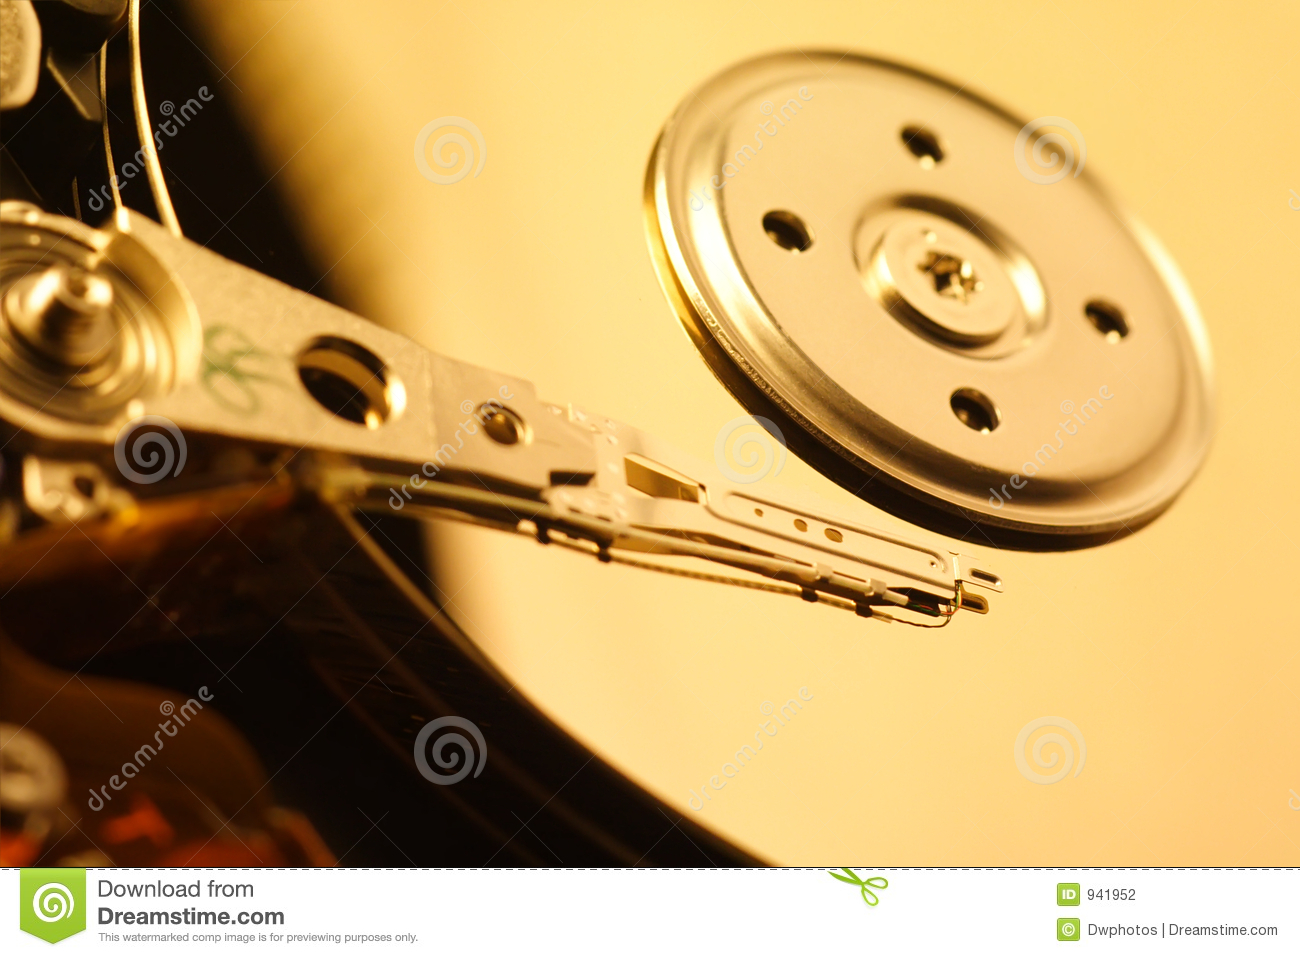 Download Close-Up Of Harddrive/Harddisc Stock Photo - Image of computer, gear: 941952